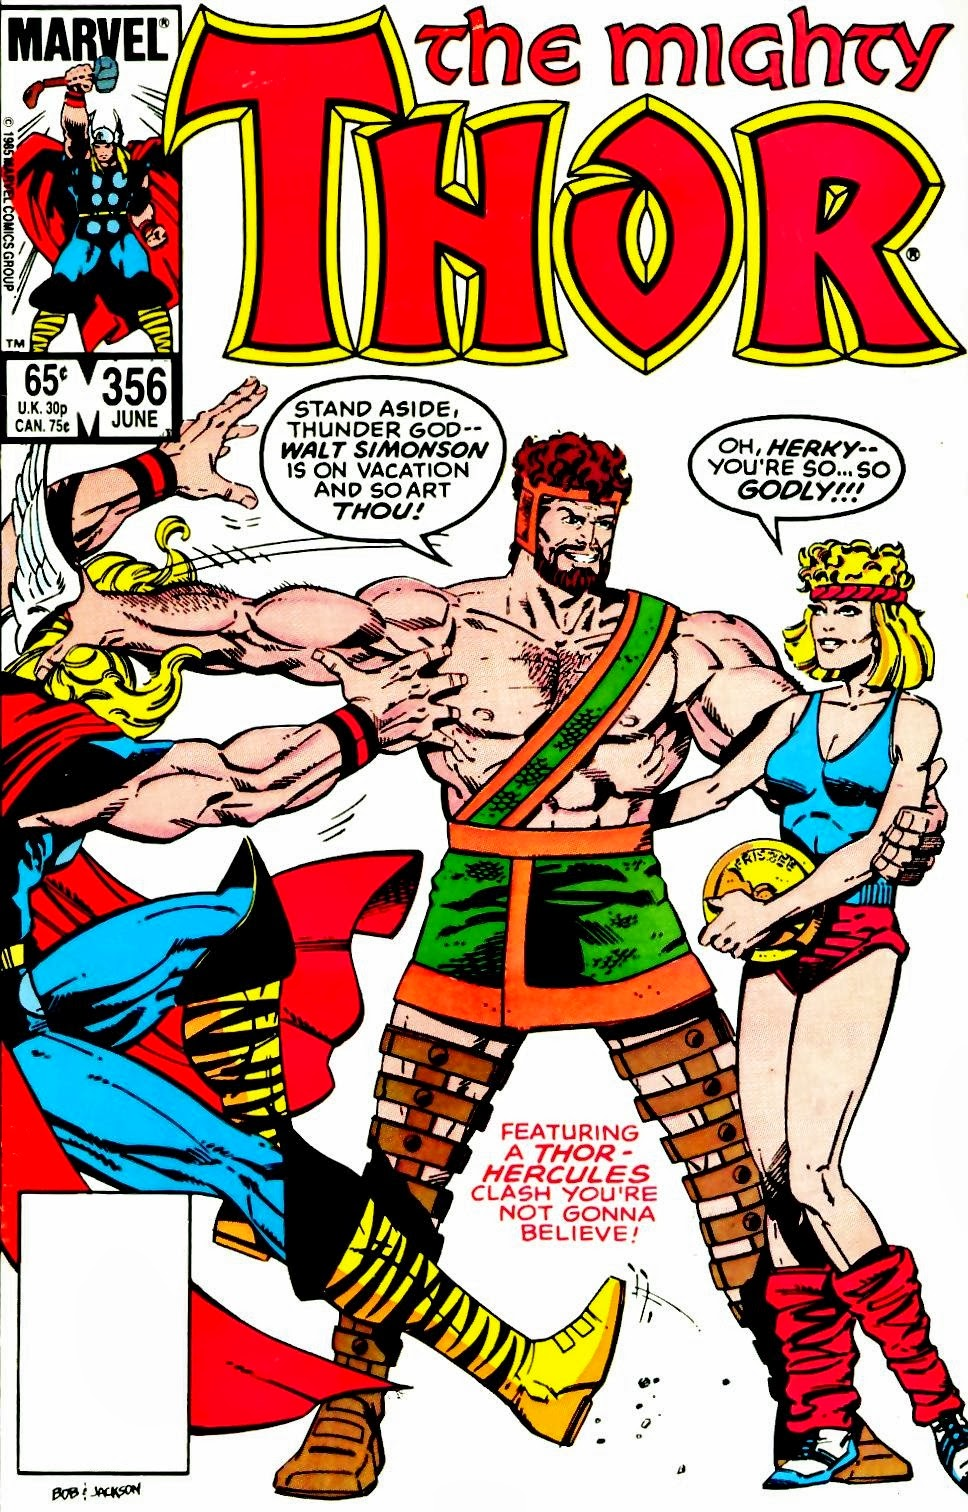 difference in hercules and spiderman While dc's ares is a manipulative god and wonder woman's arch-nemesis, marvel's version of the character became something of an anti-hero who is much more of a warrior, like hercules and thor, than an omnipotent being.